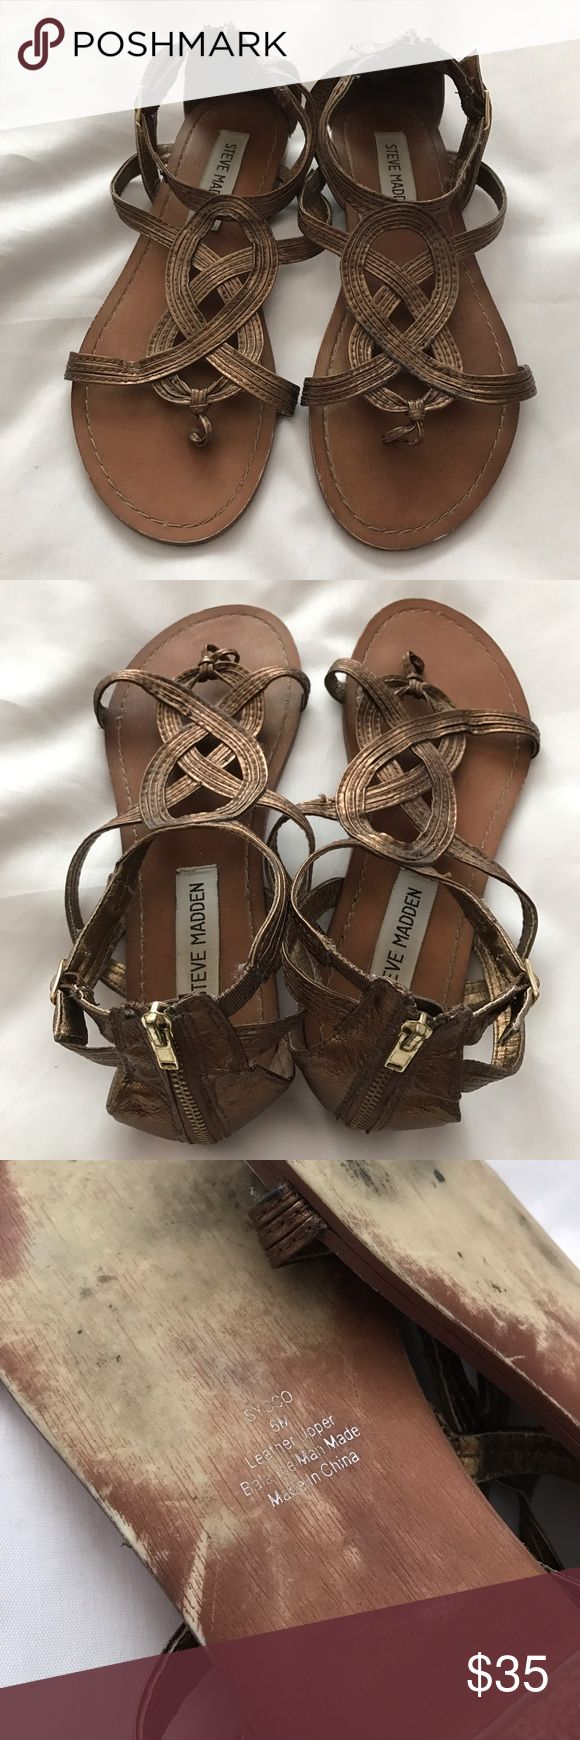 Steve Madden 'Sysco' sandal Women's size: 6 Bronze no box. No trades. Shows signs of normal wear but still has a lot of life to it. Steve Madden Shoes Sandals